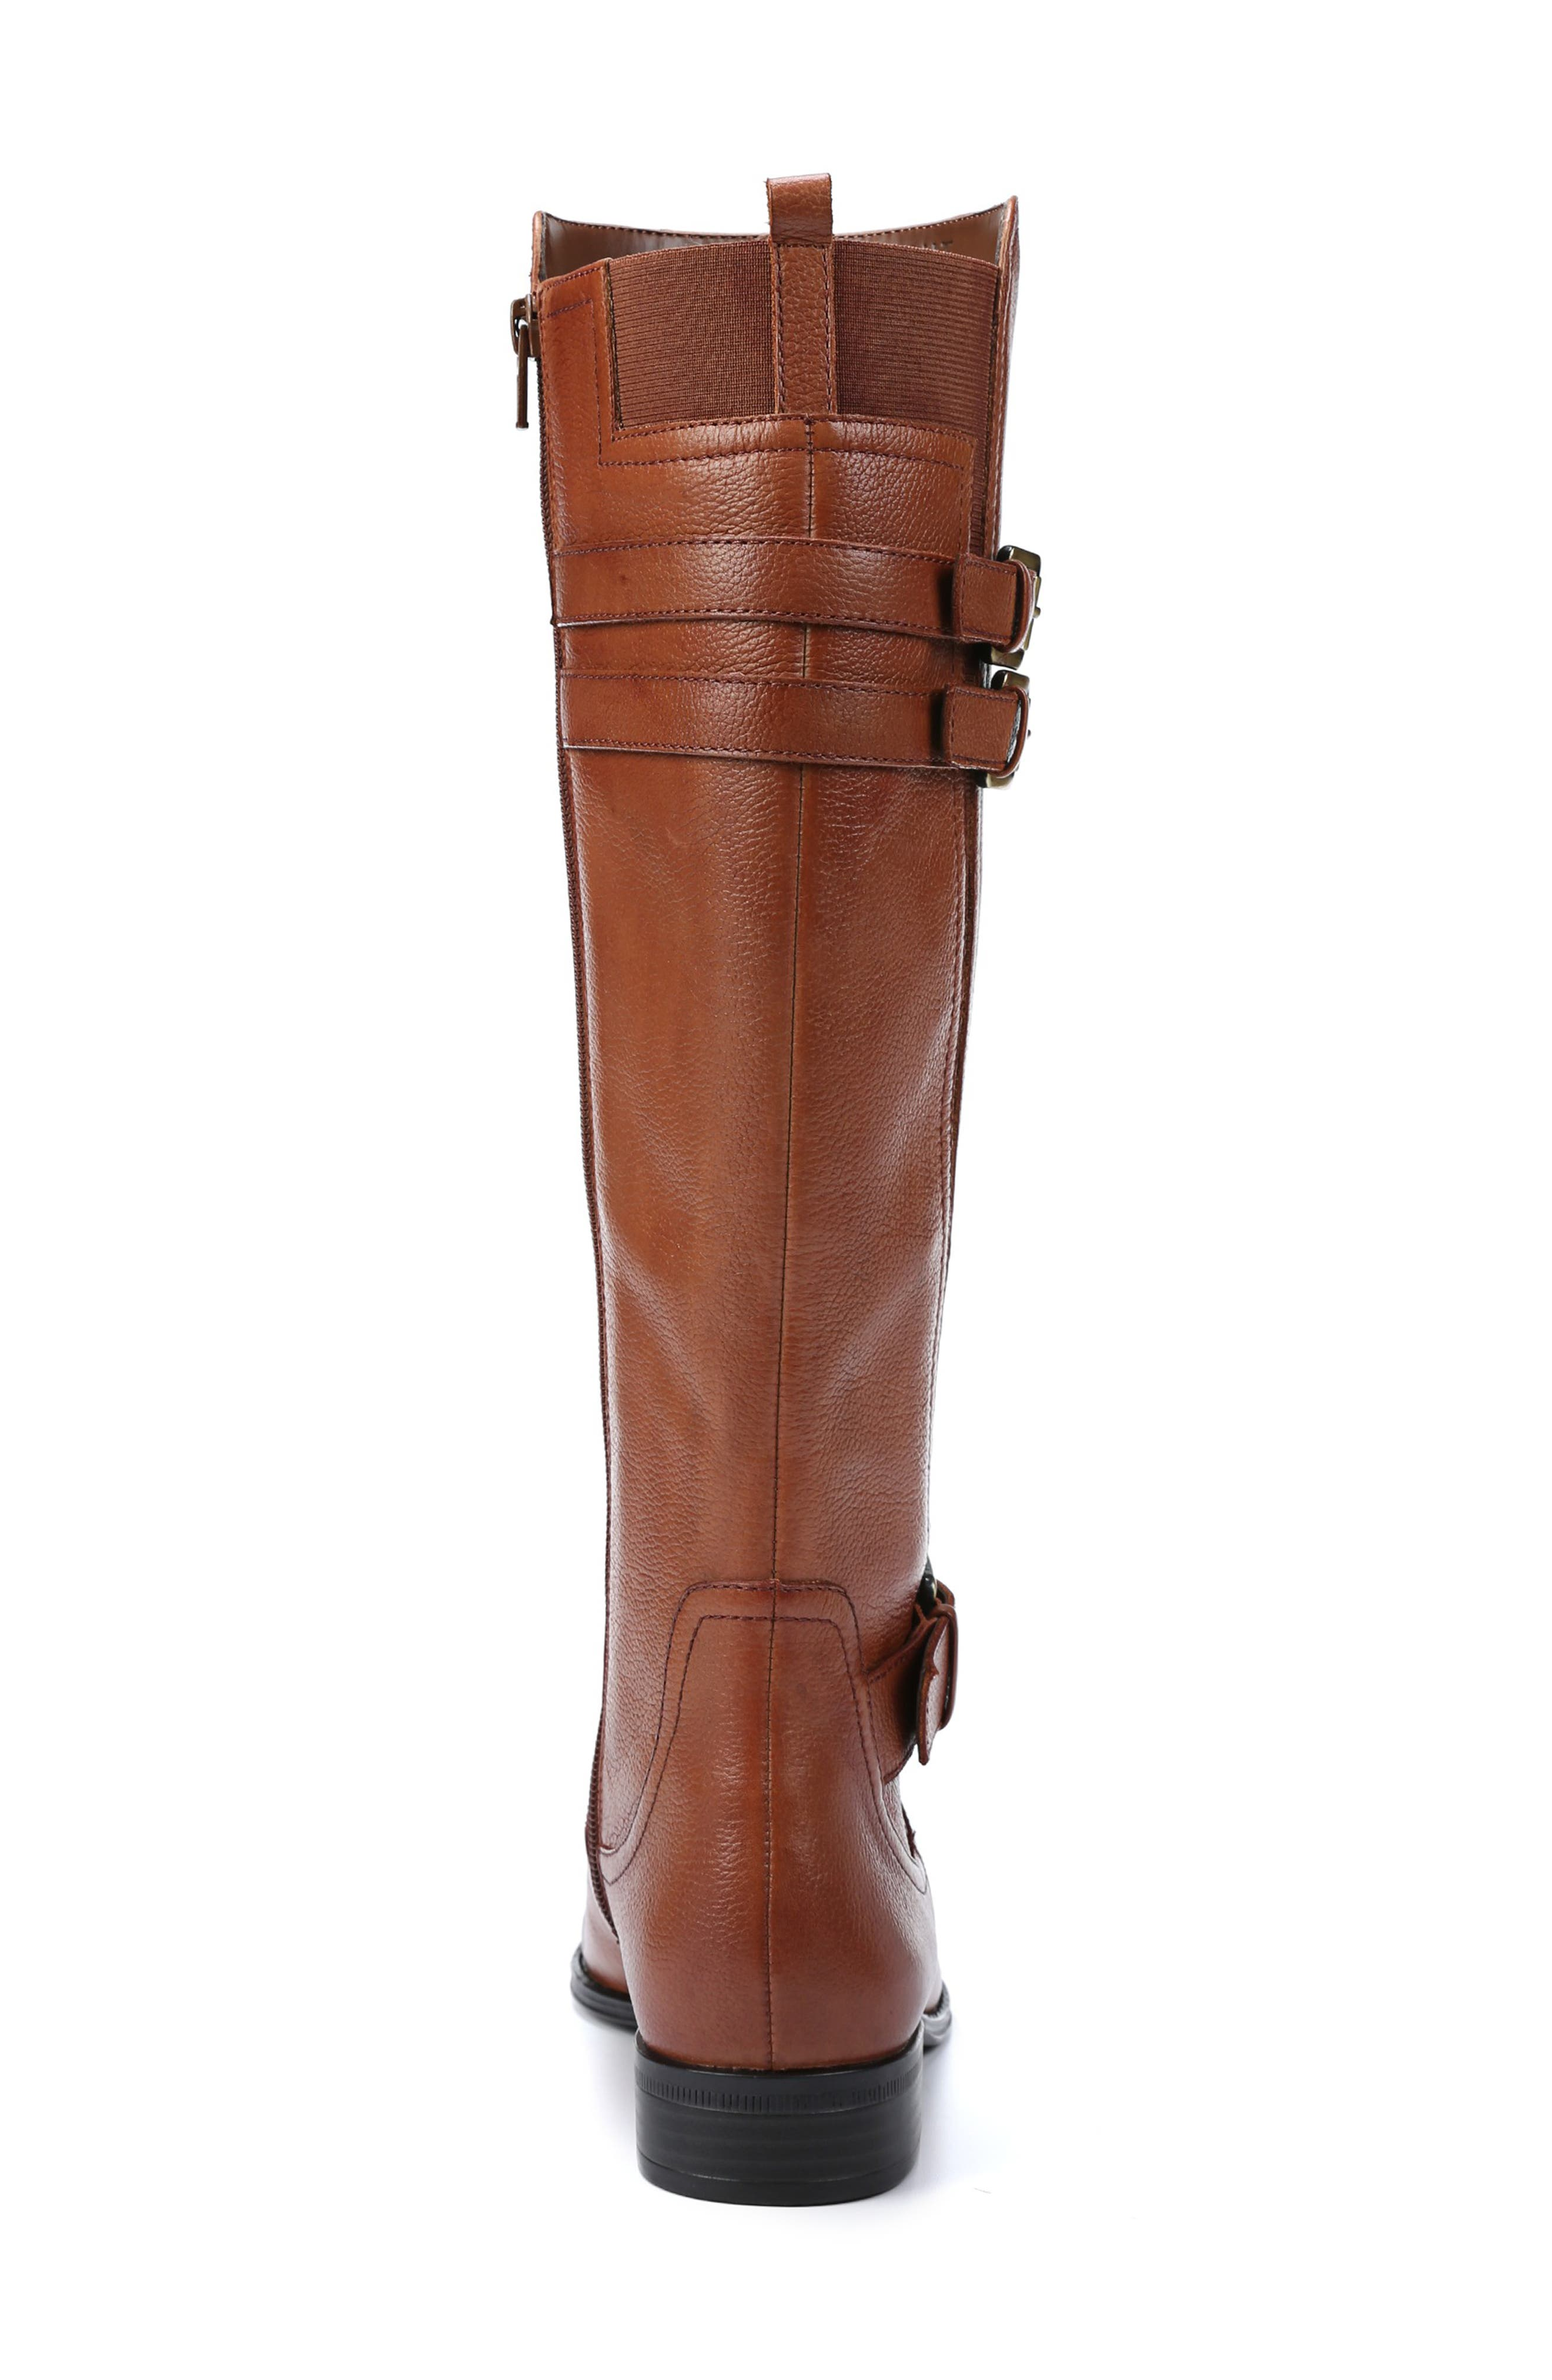 NATURALIZER, Jessie Knee High Riding Boot, Alternate thumbnail 7, color, BANANA BREAD LEATHER